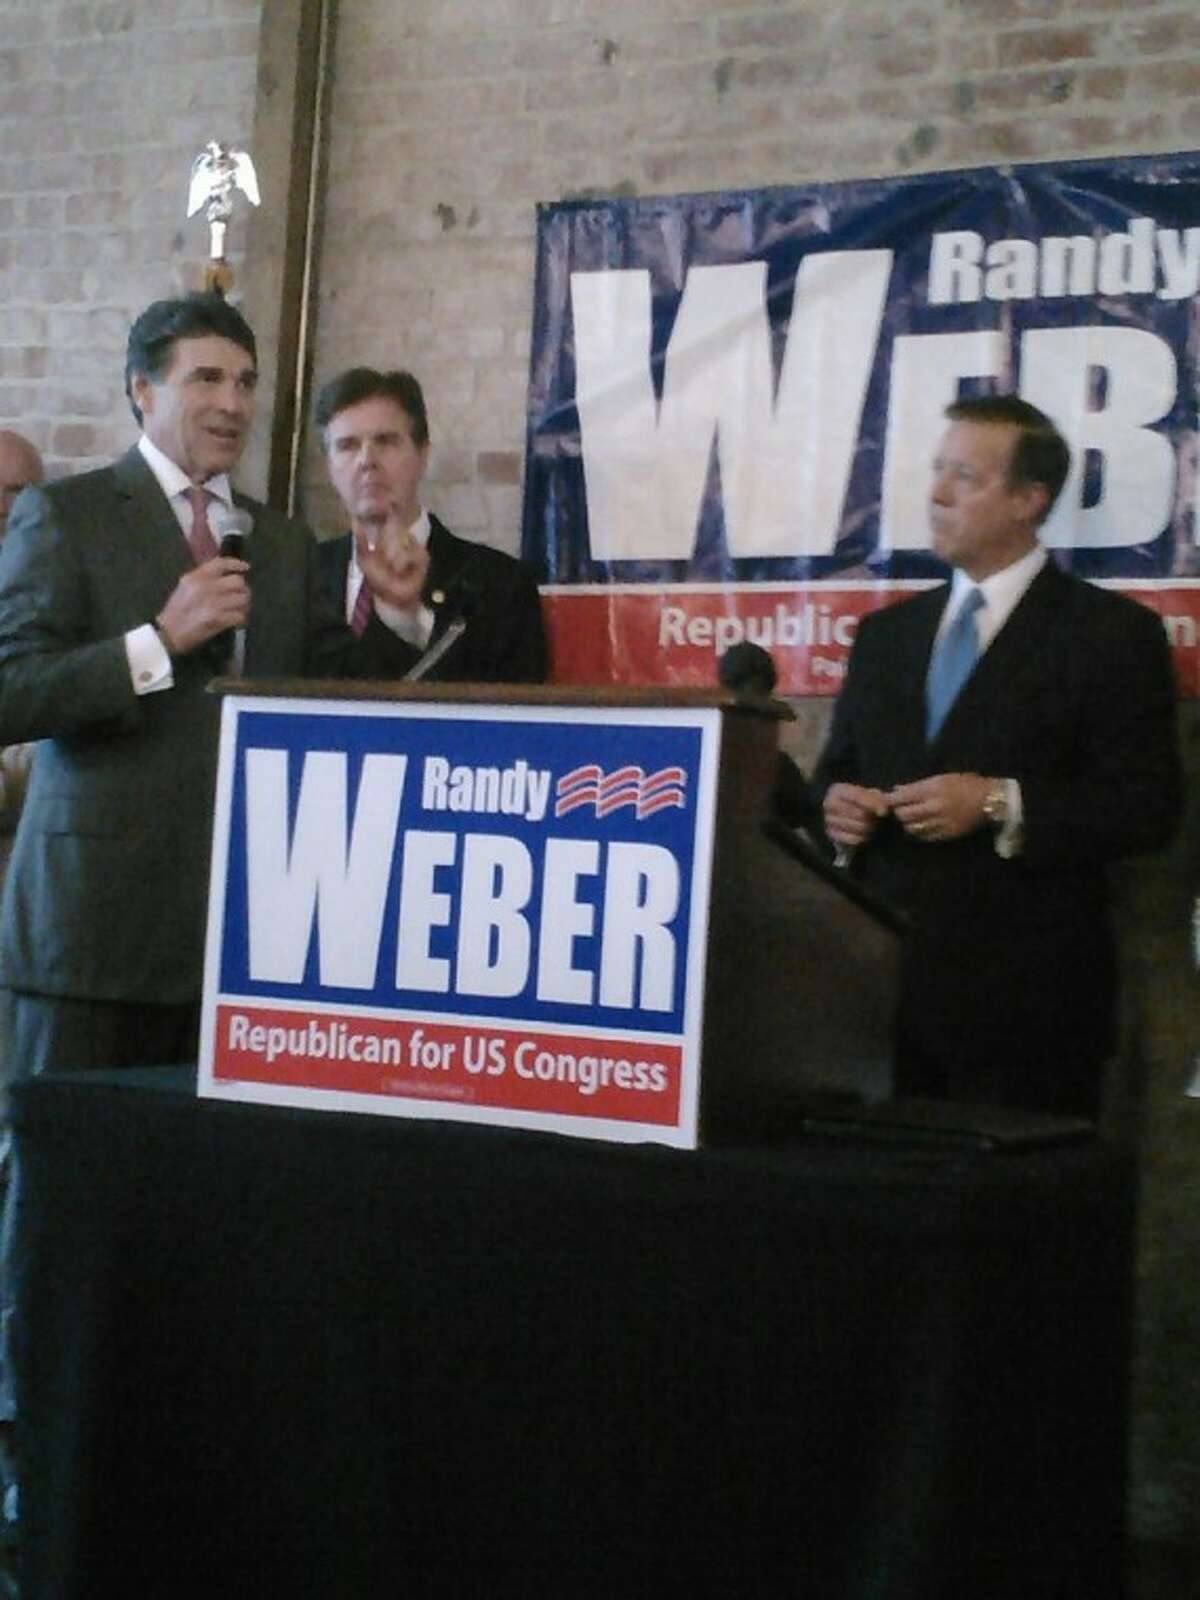 """Gov. Rick Perry voiced support for congressional candidate Randy Weber at a rally held in League City Wednesday (July 11). """"I can't tell you how important it is to send a committed, proven conservative to the United States Congress to represent the folks in this part of the state,"""" Perry said. """"As a conservative, Randy Weber does have a tremendous record."""""""